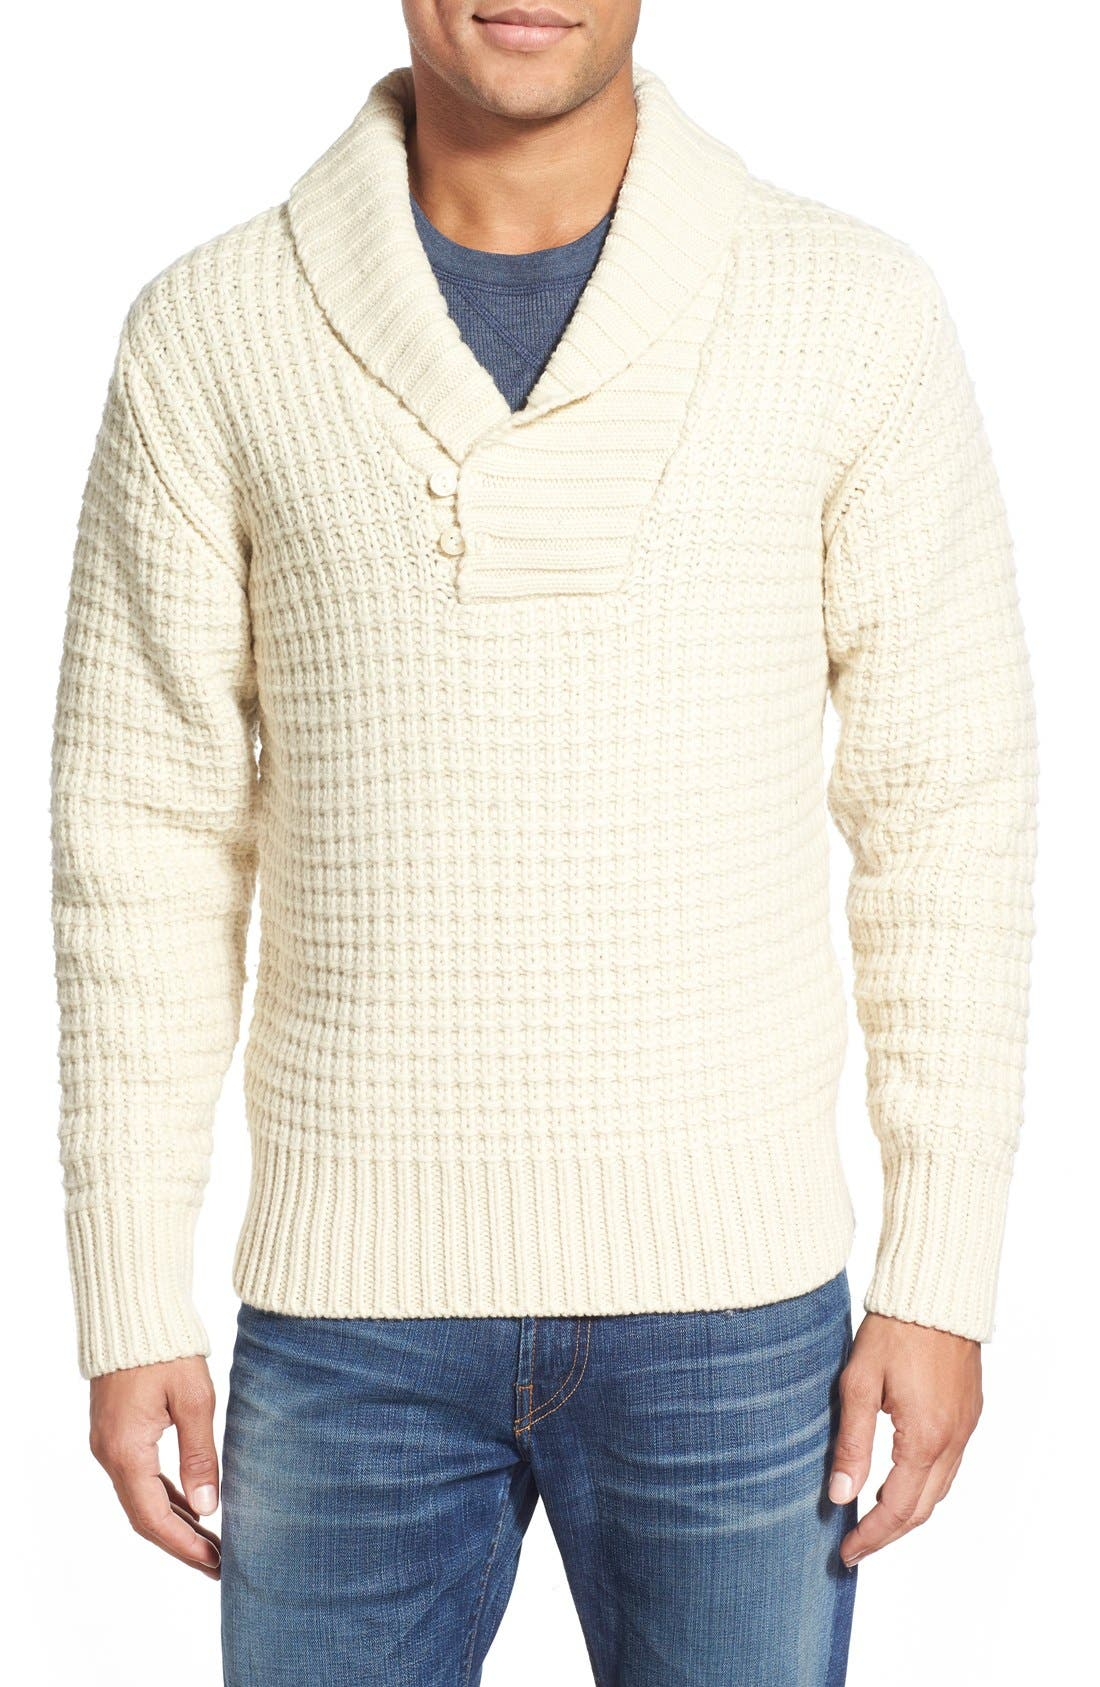 Alternate Image 1 Selected - Schott NYC Shawl Collar Knit Pullover